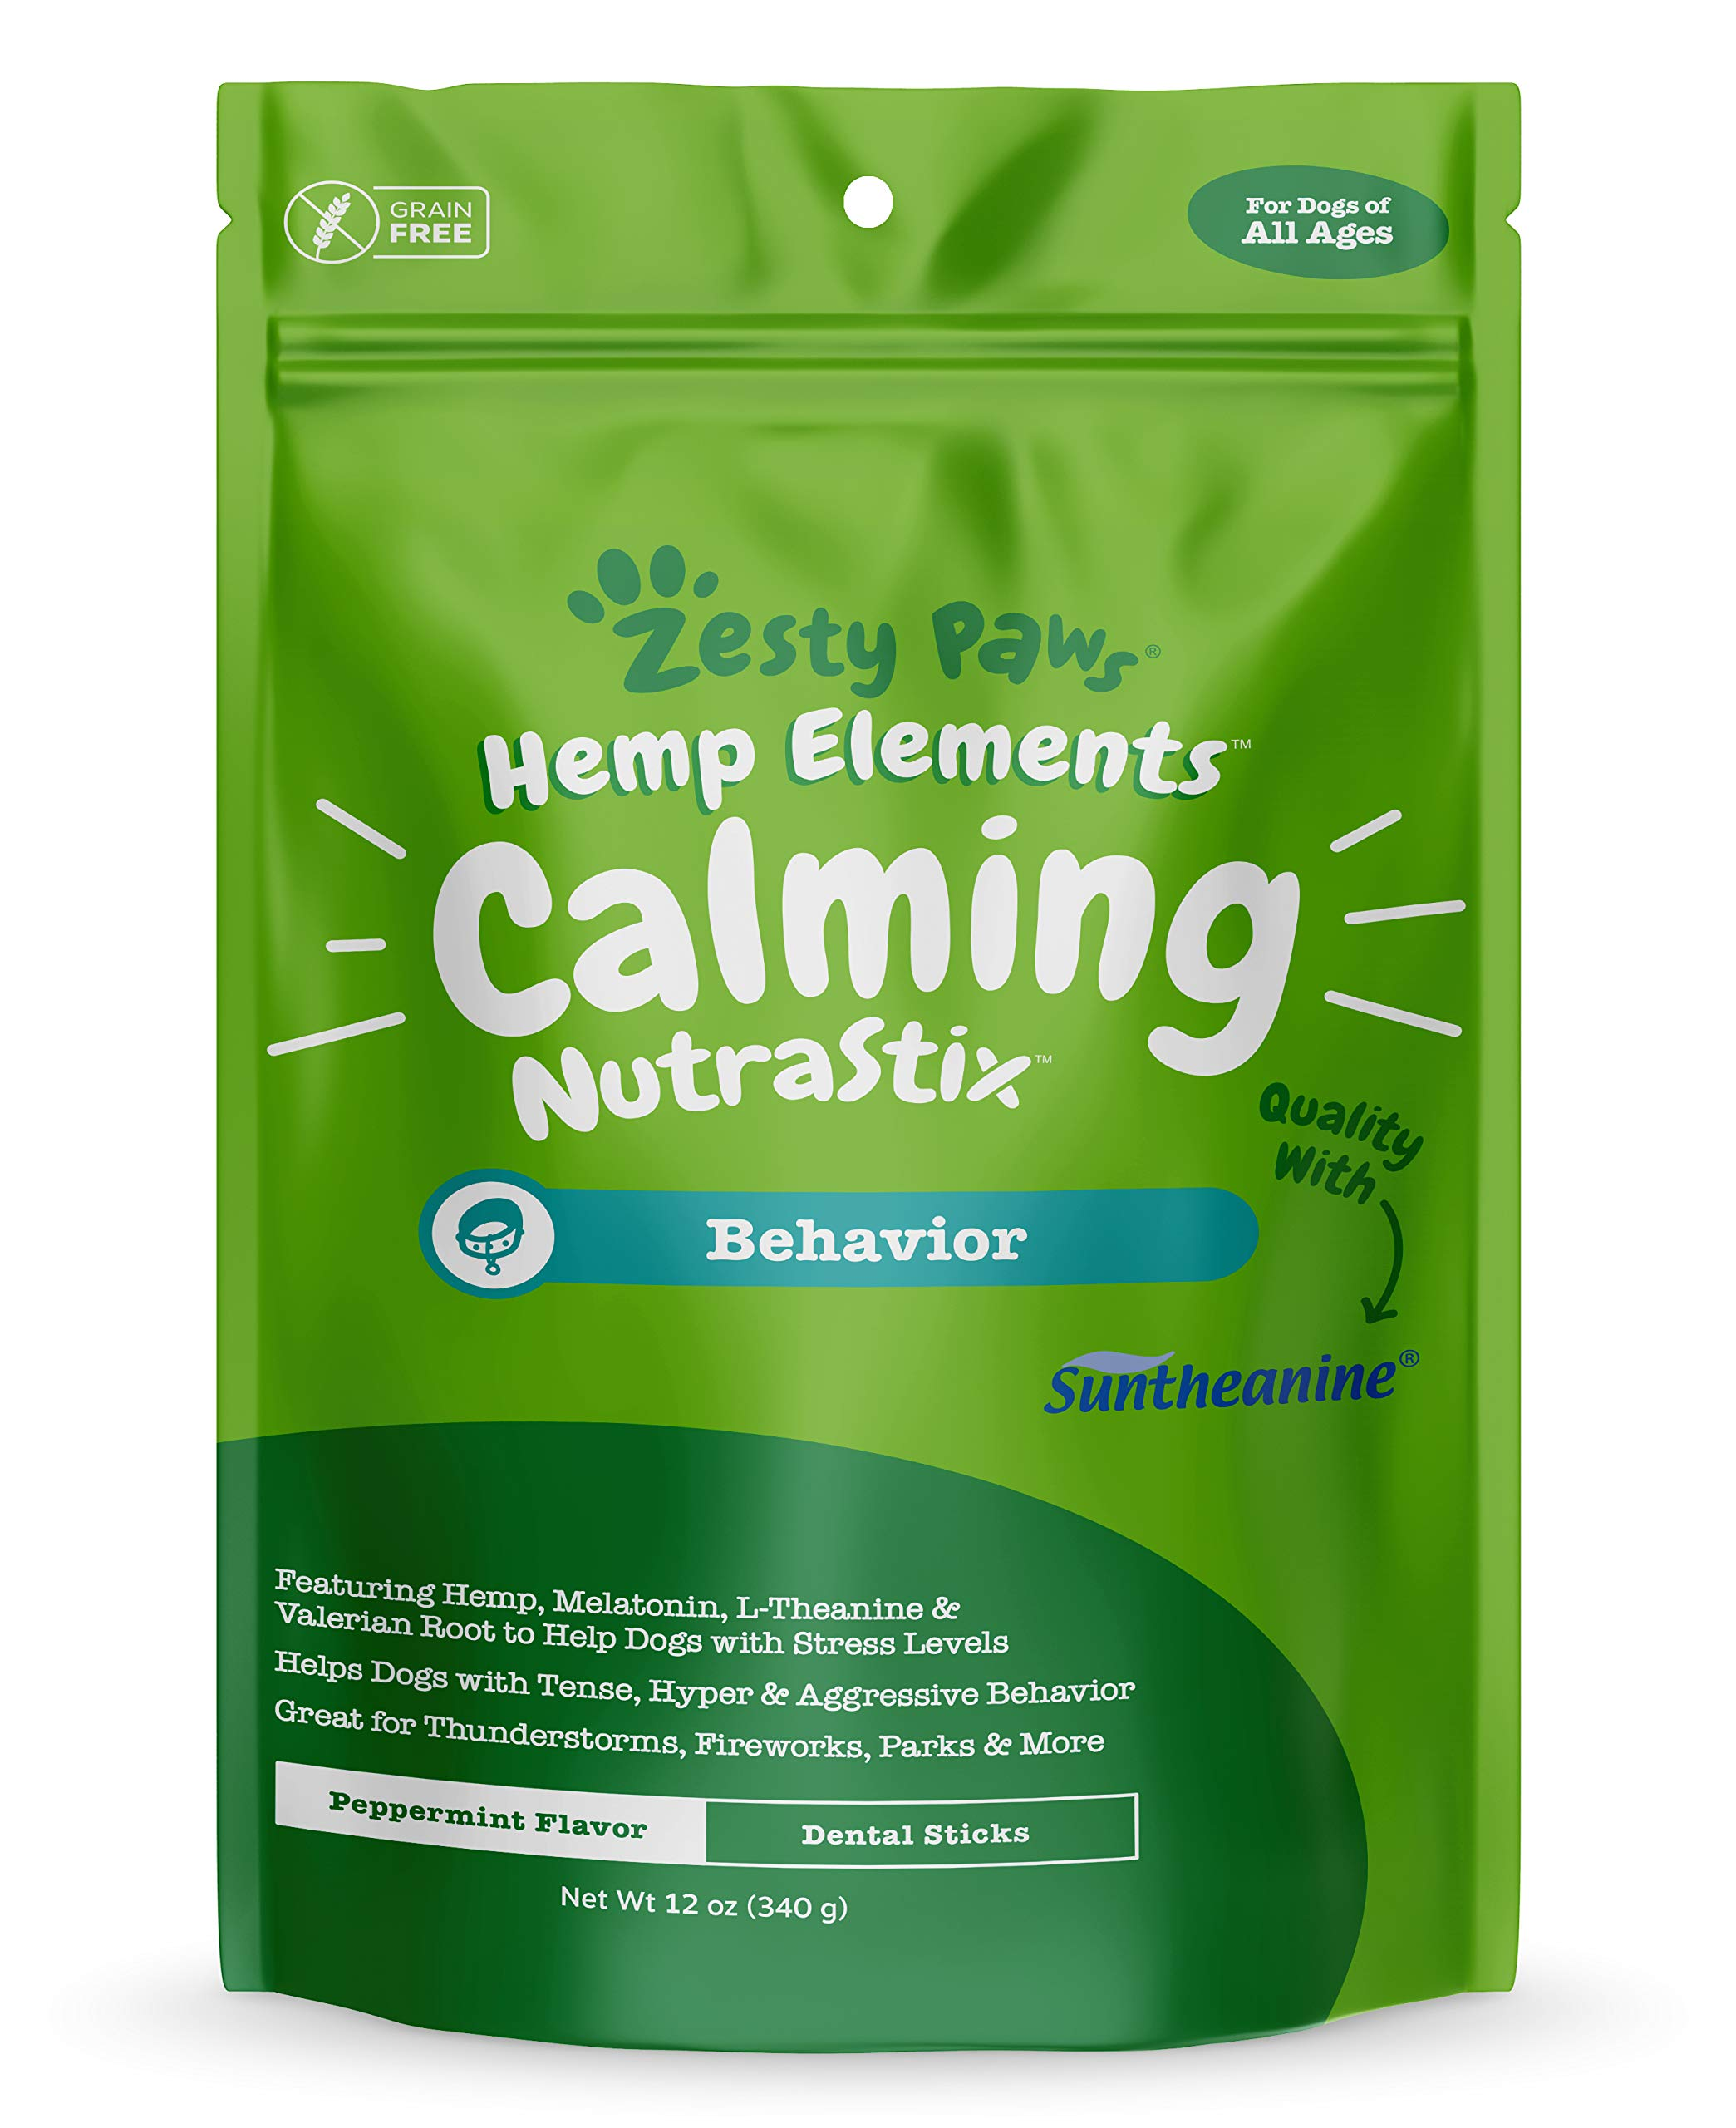 Calming Dental Sticks for Dogs - Stress & Anxiety Relief with Hemp, Melatonin & Chamomile - Dog Tartar Teeth Cleaning & Breath Freshener - Composure for Fireworks, Thunderstorms & Barking - 12 OZ by Zesty Paws